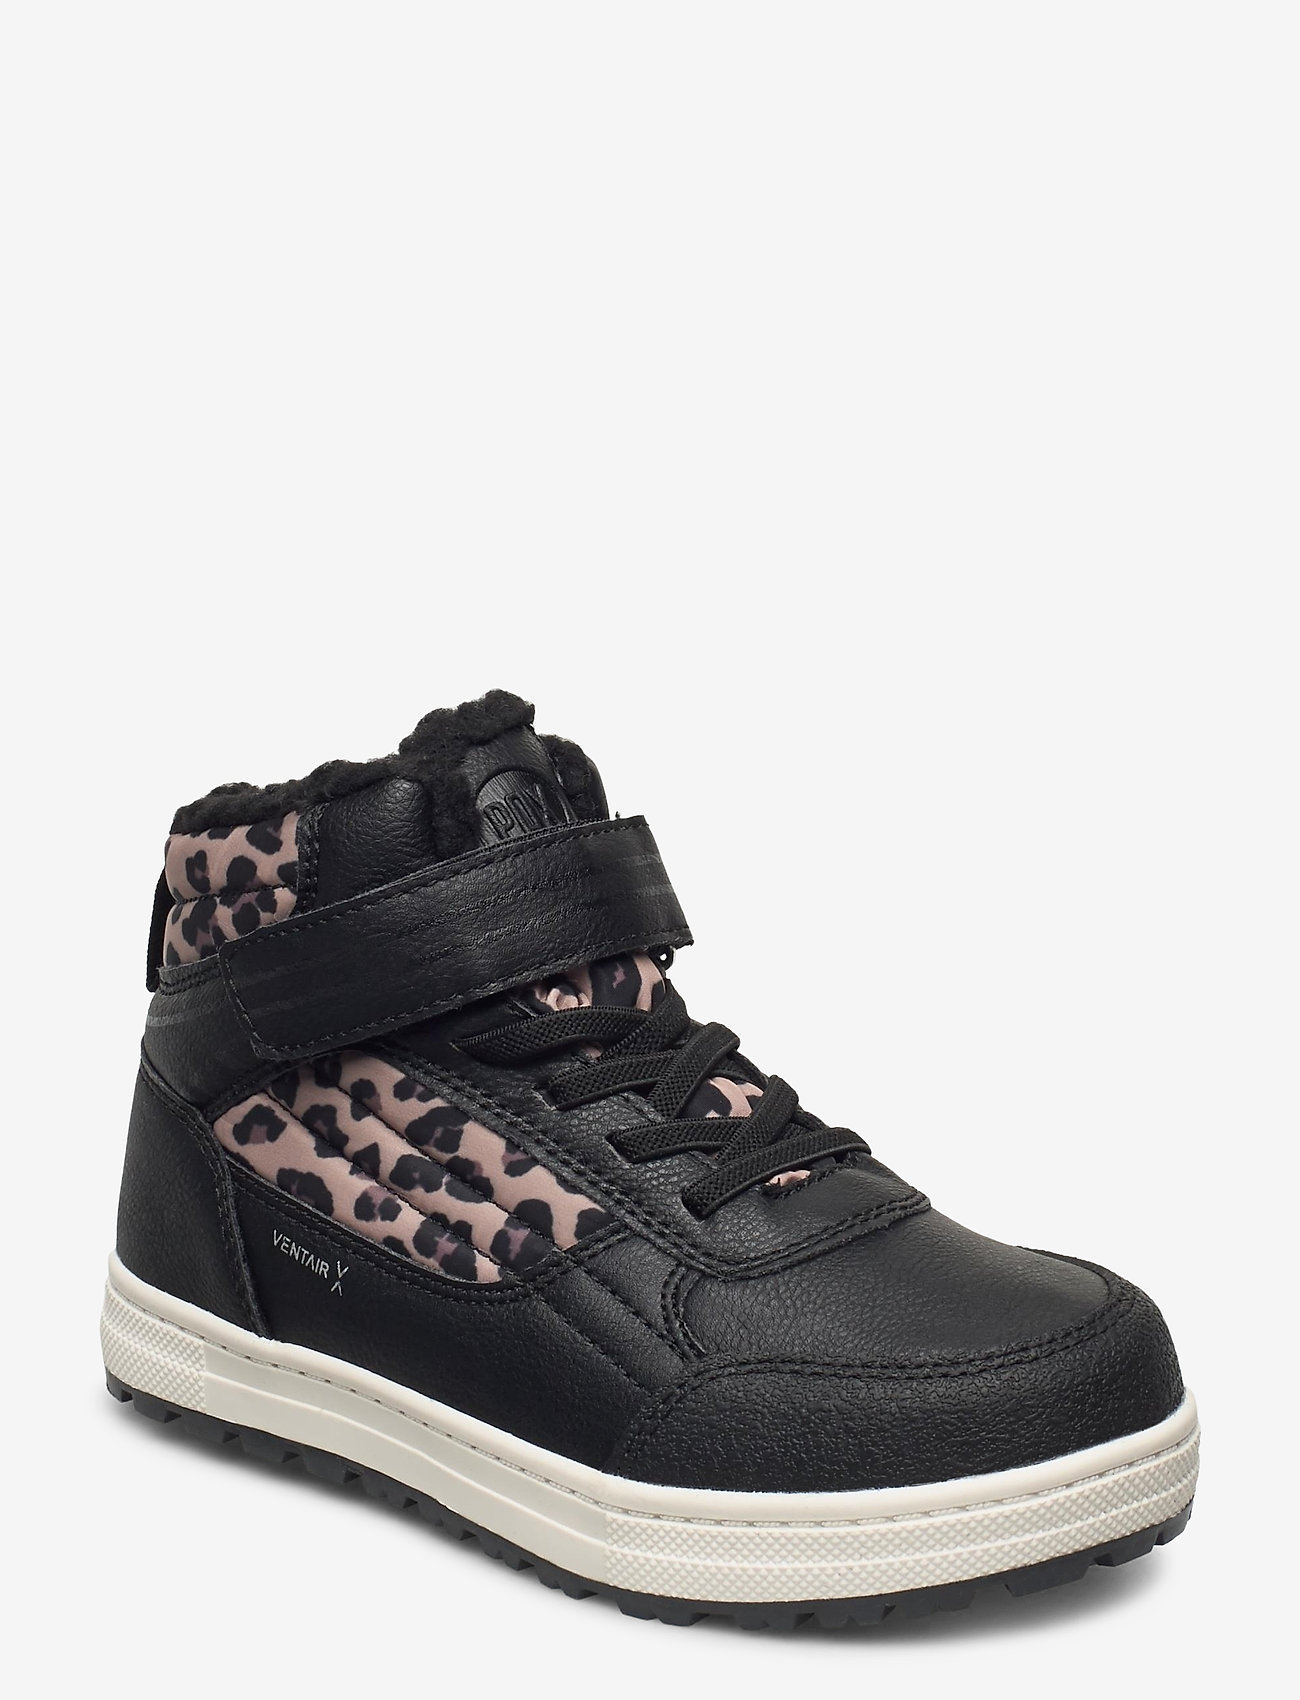 PAX - CHILLA PAX KÄNGA - high tops - black/leo - 0